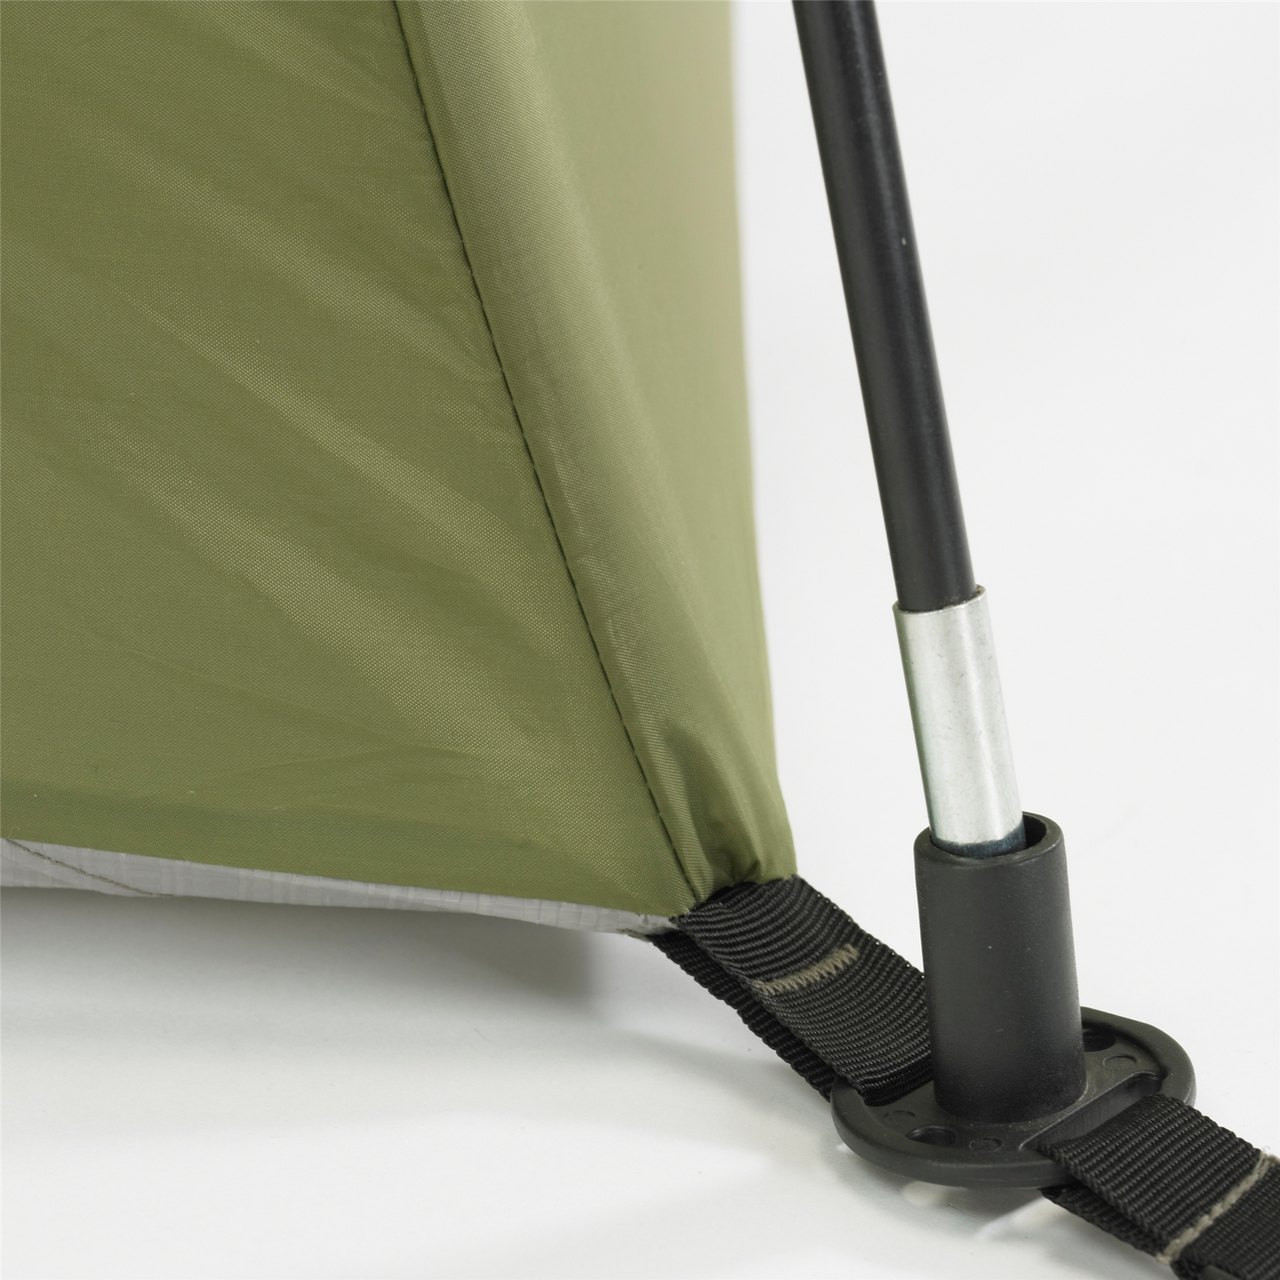 Close up view of a tent pole inserting into a tent pole hub on the Wenzel Evergreen 6 tent